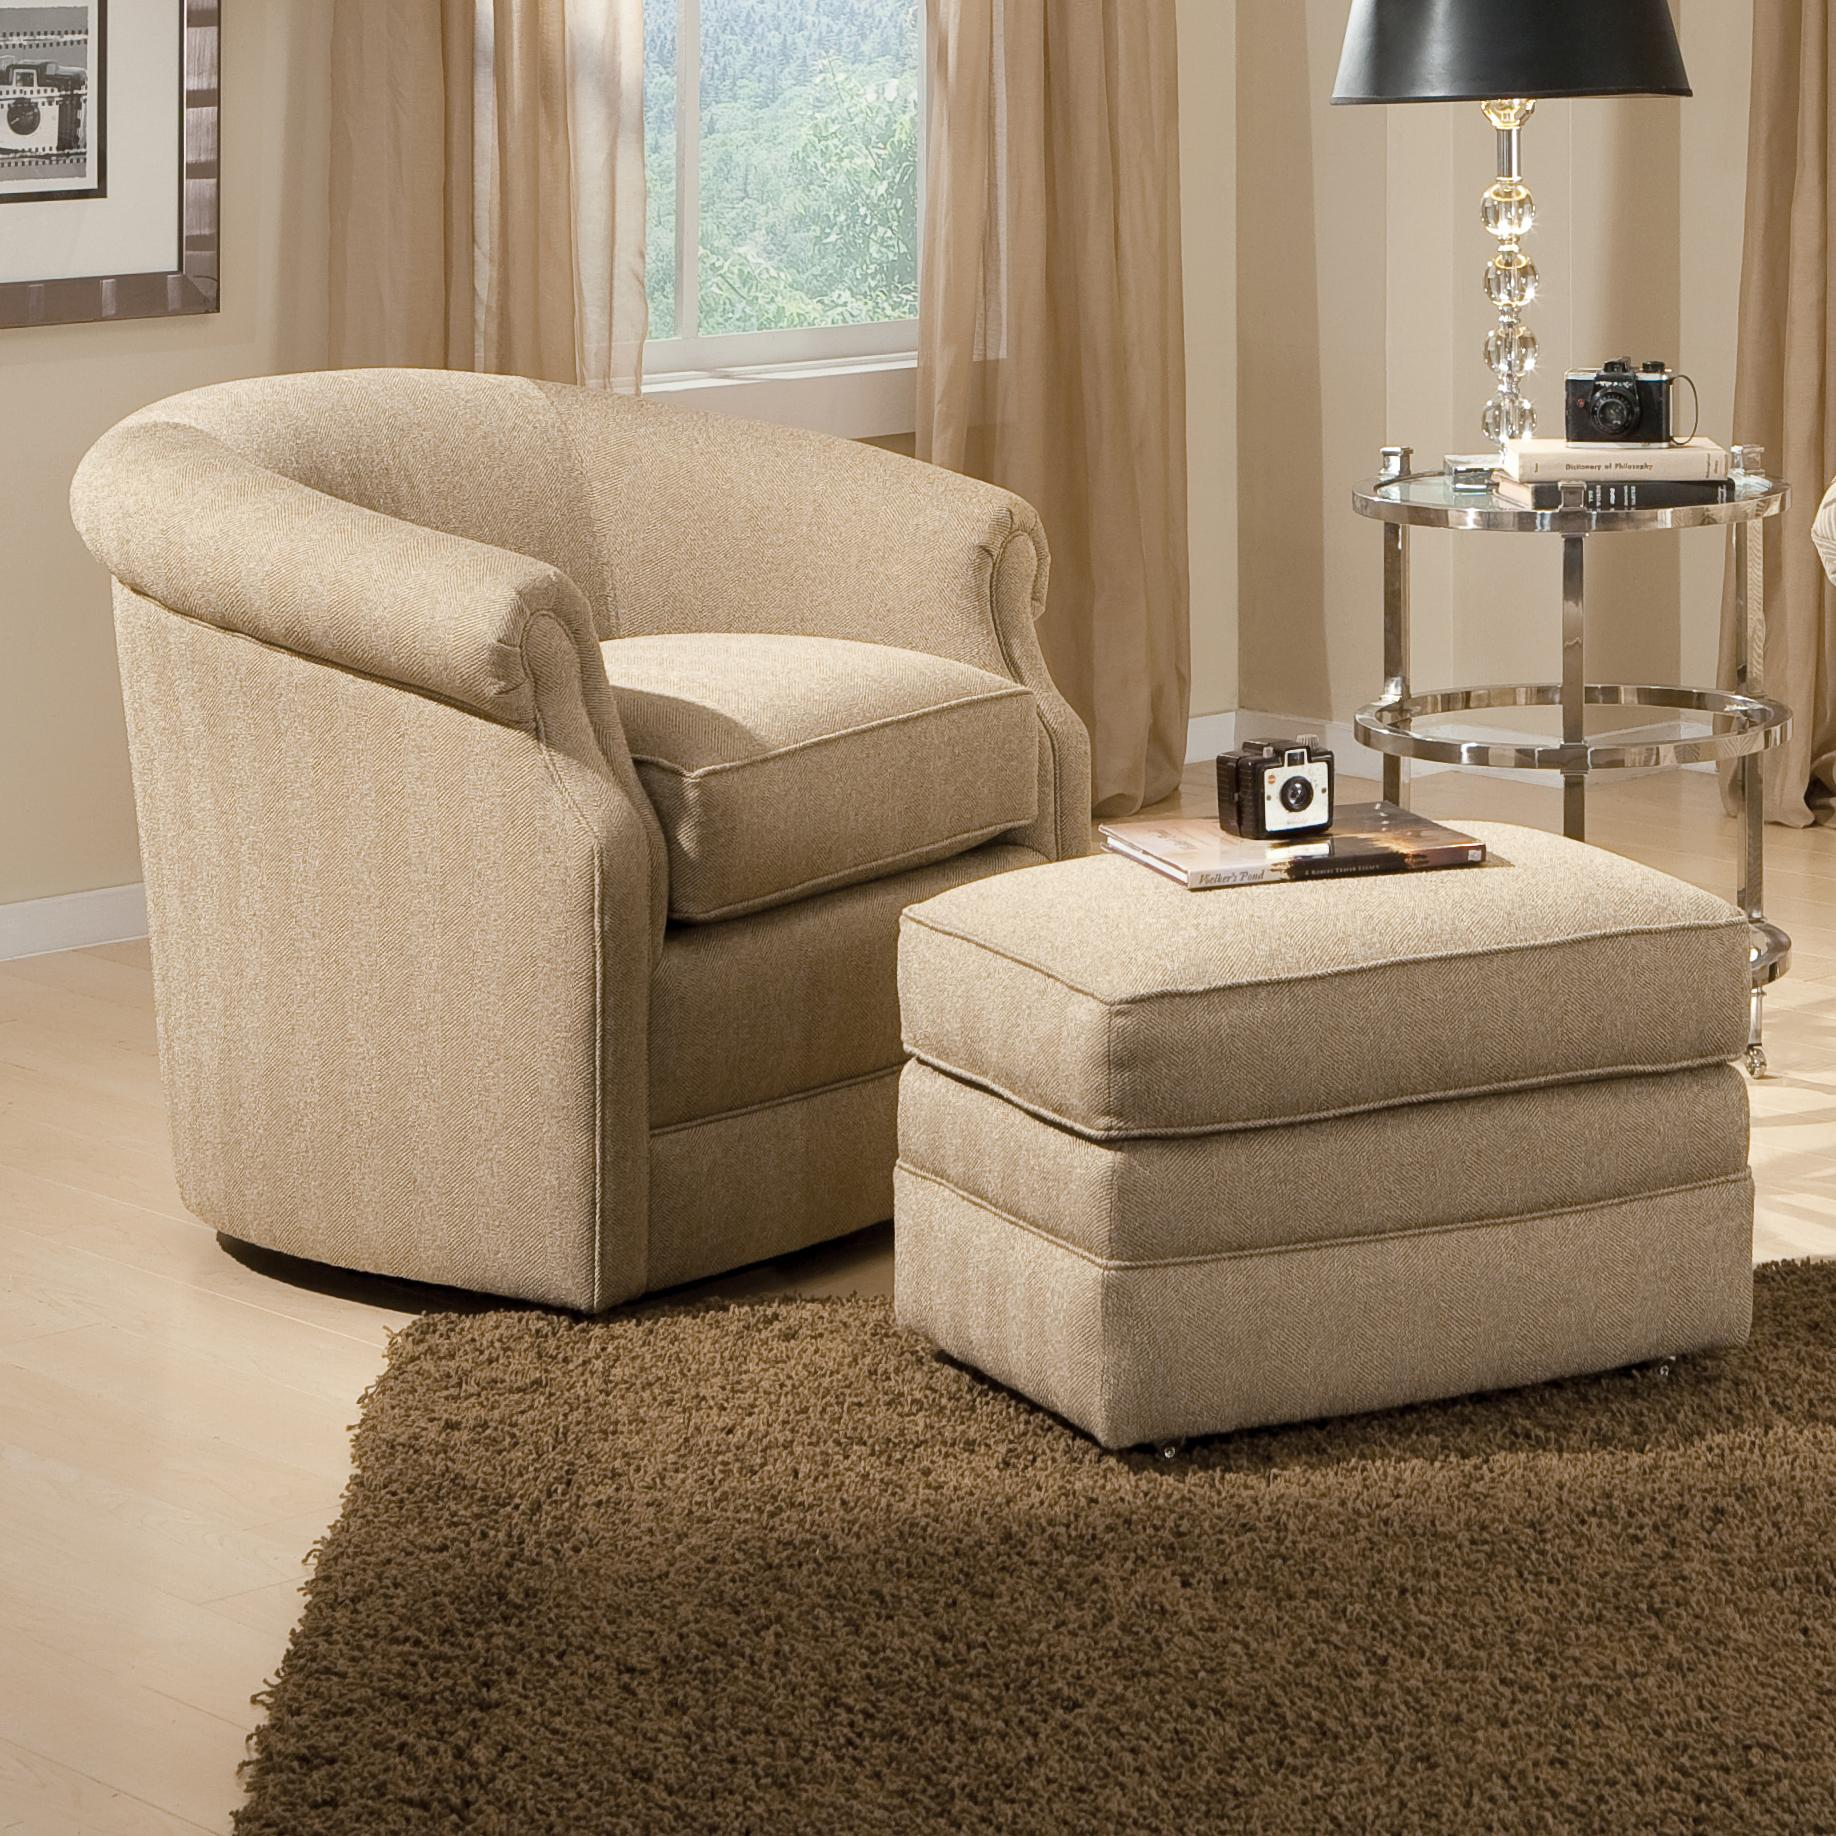 Image of: swivel barrel chair livingroom